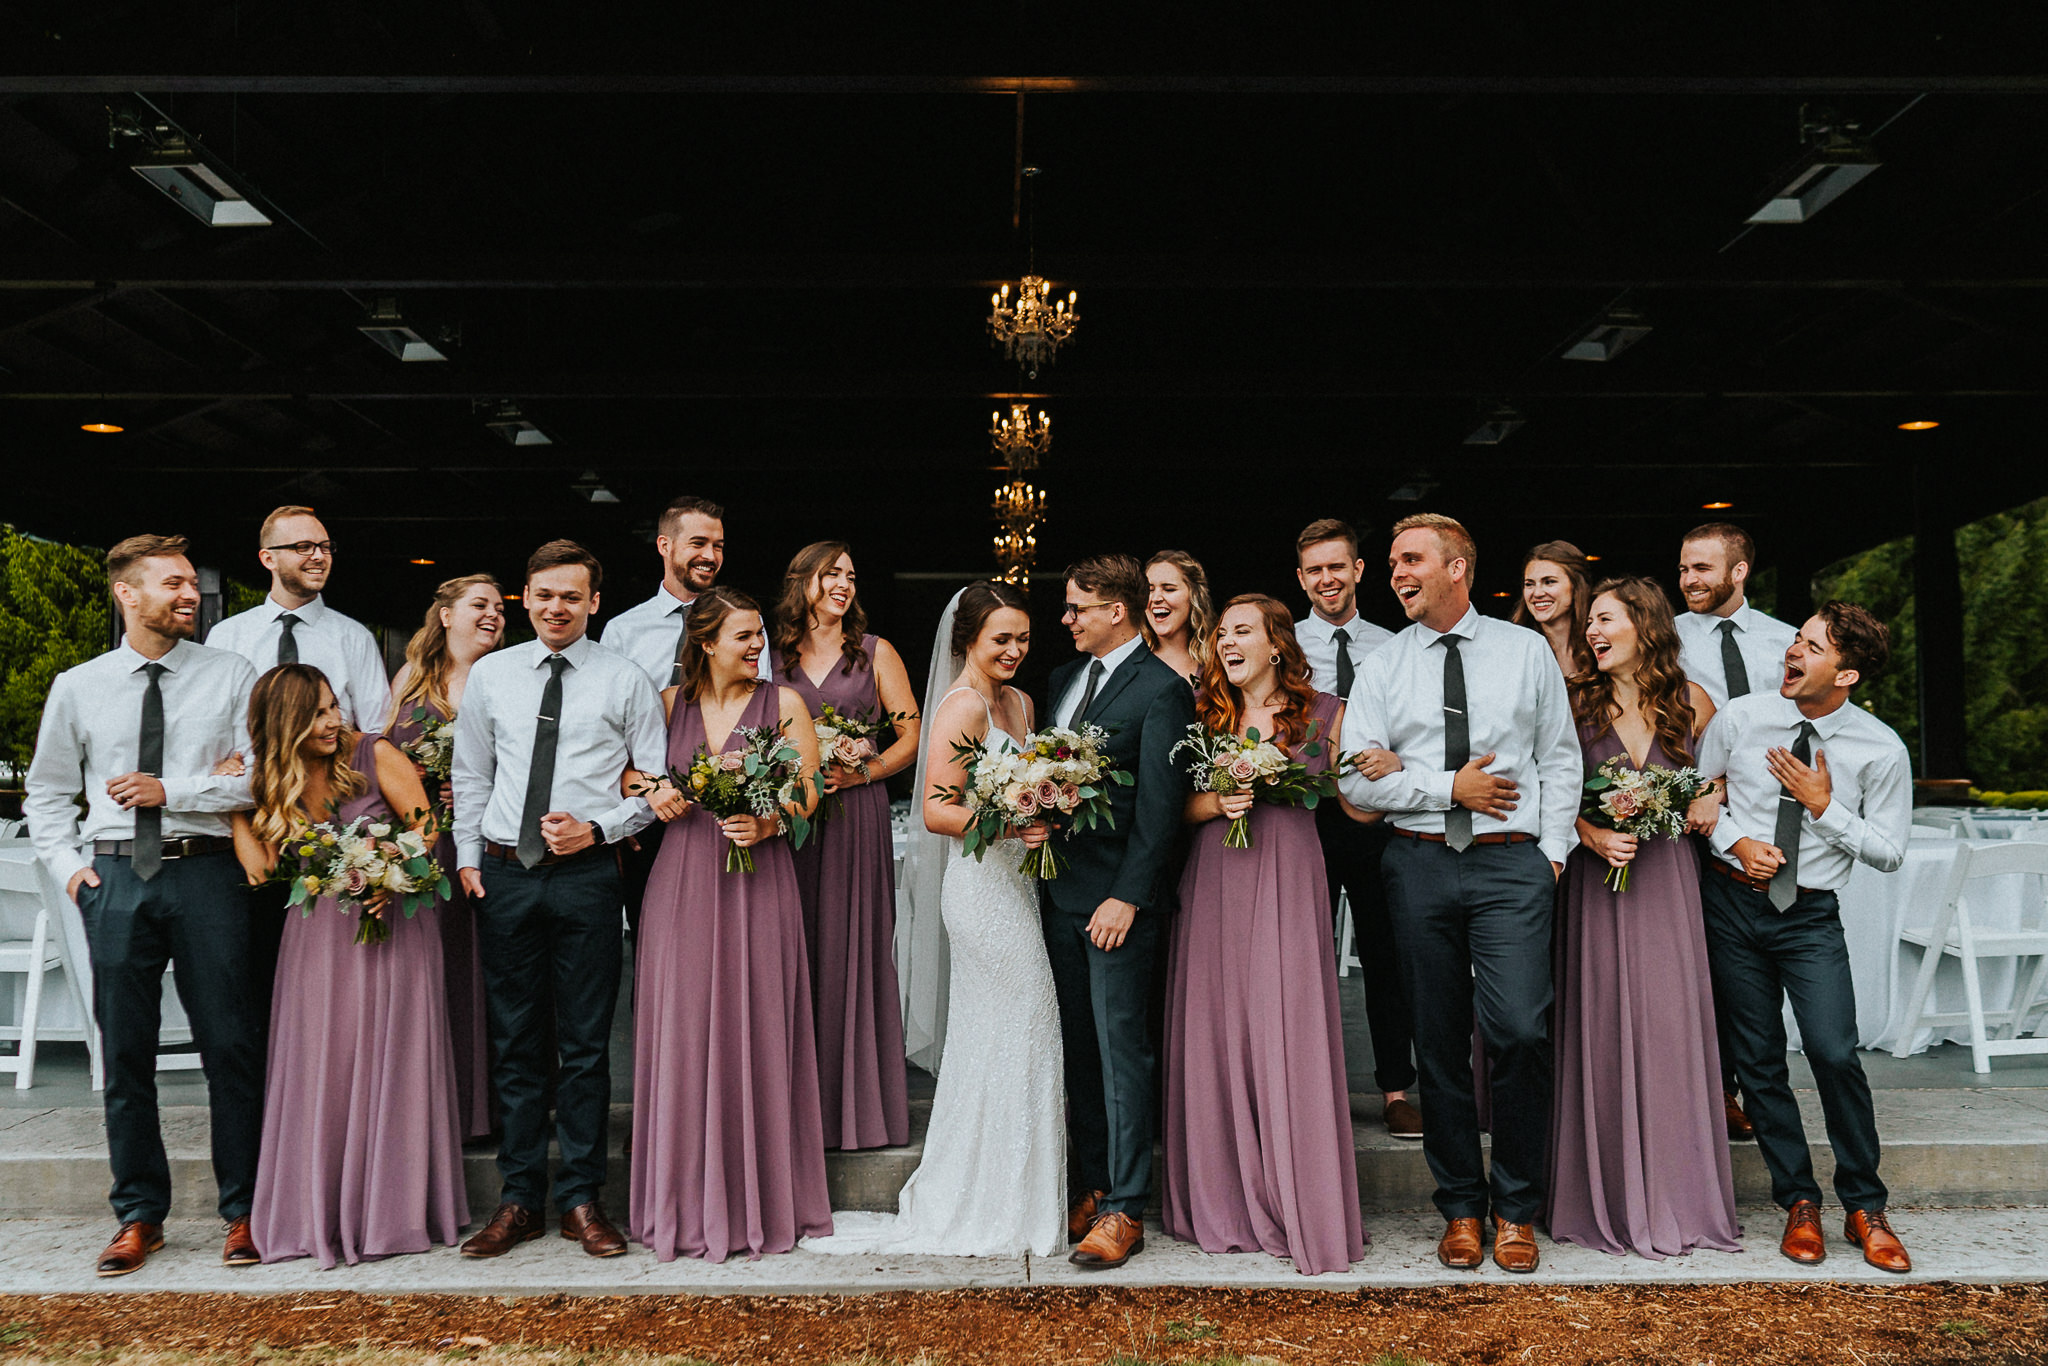 Wedding Party Water Oasis Laugh Best Portland Wedding Photographer Alfred Tang